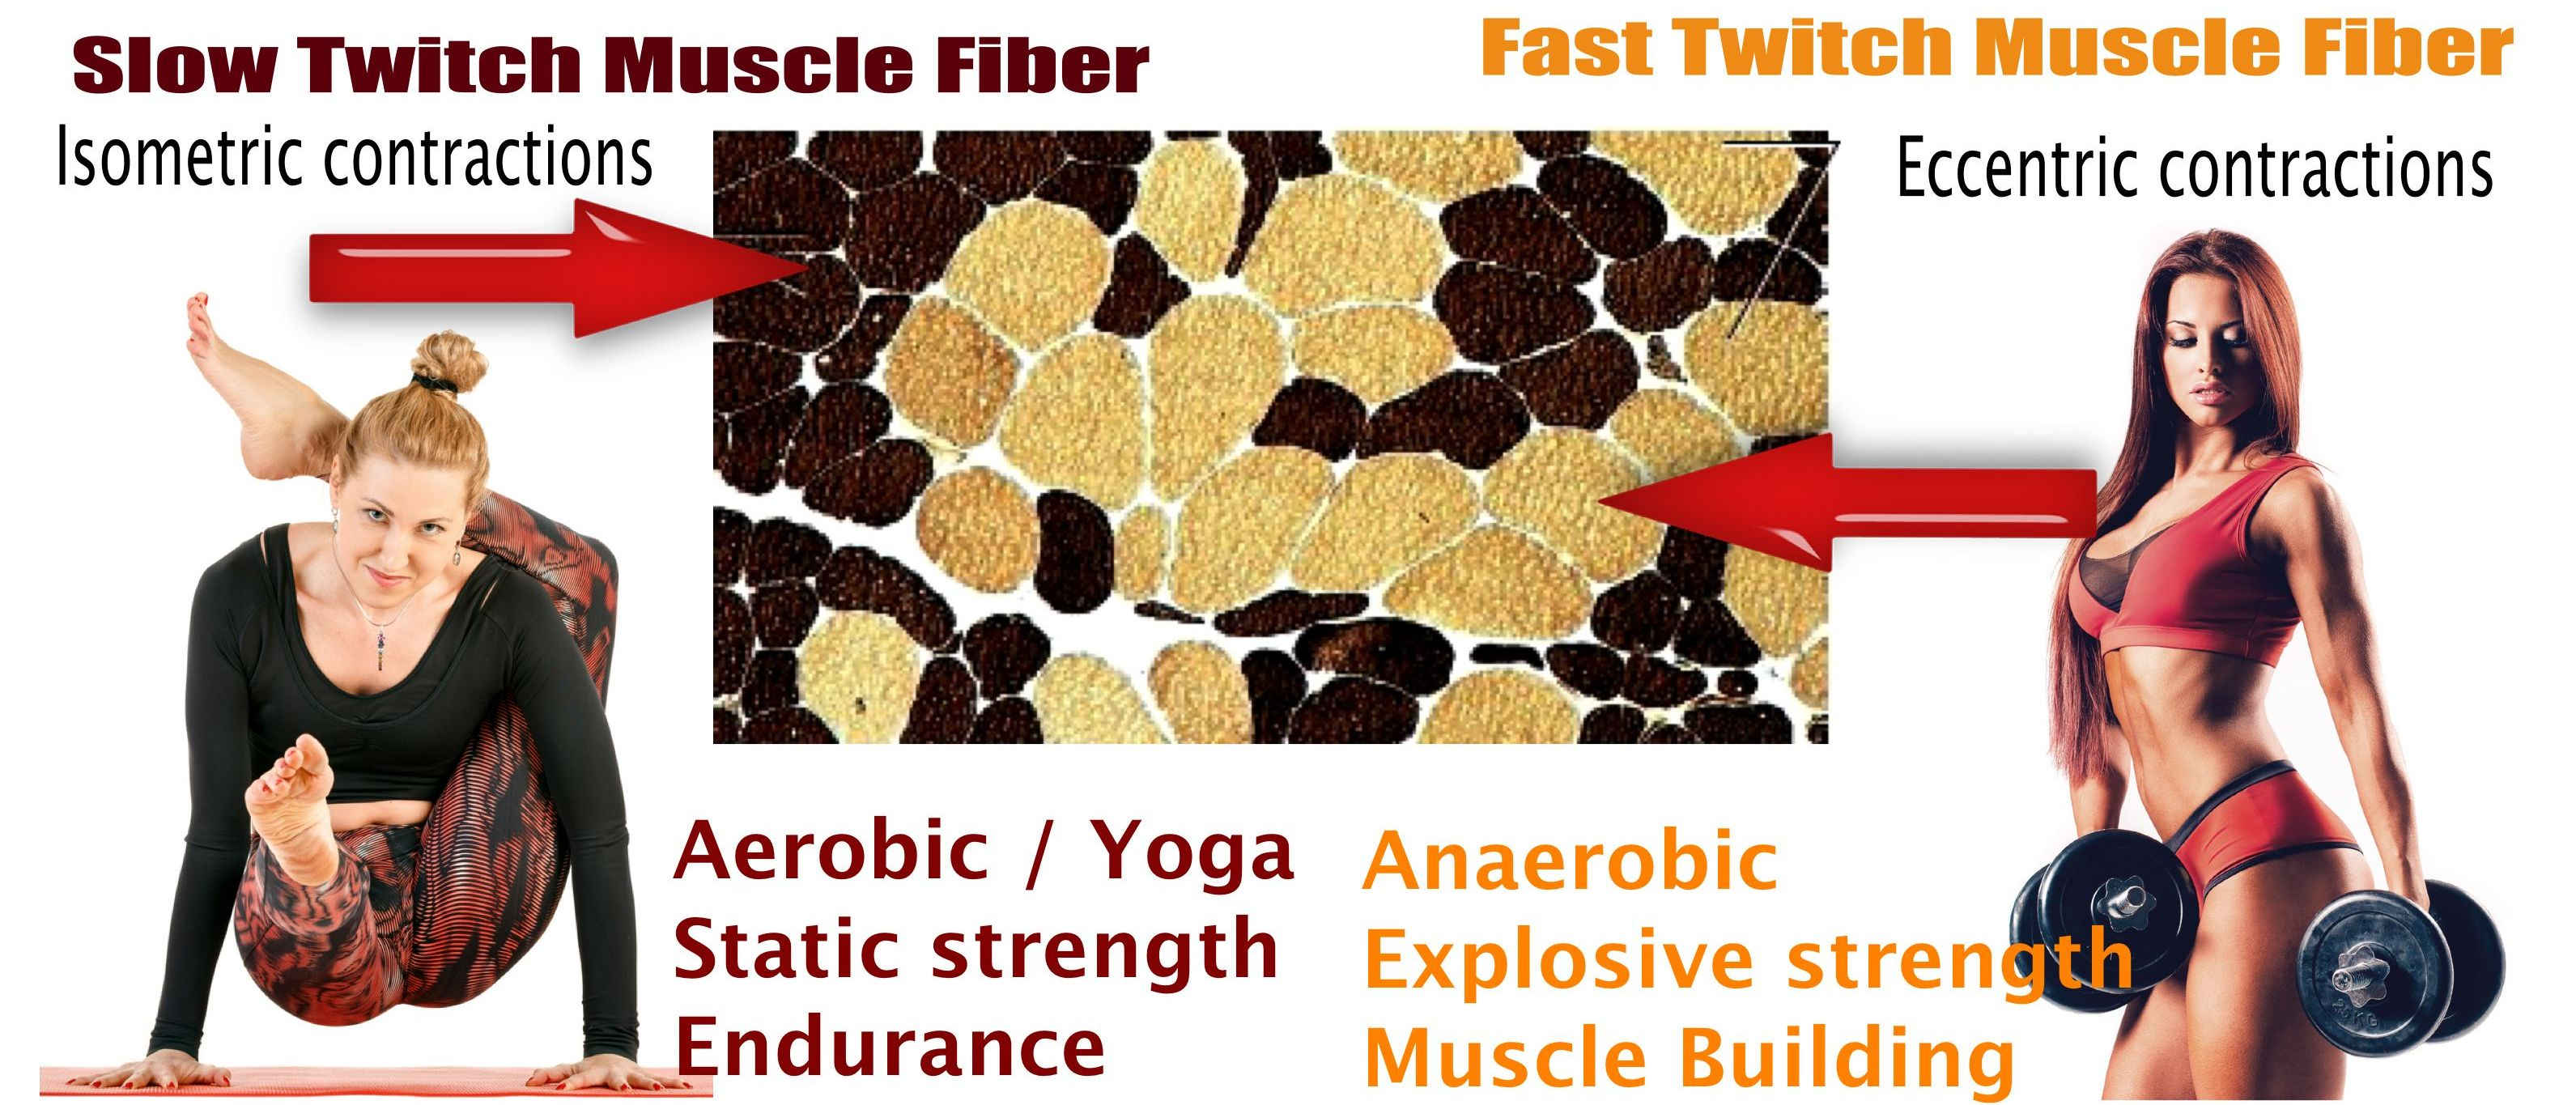 Strength Training Vs Yoga And Aerobics The Difference